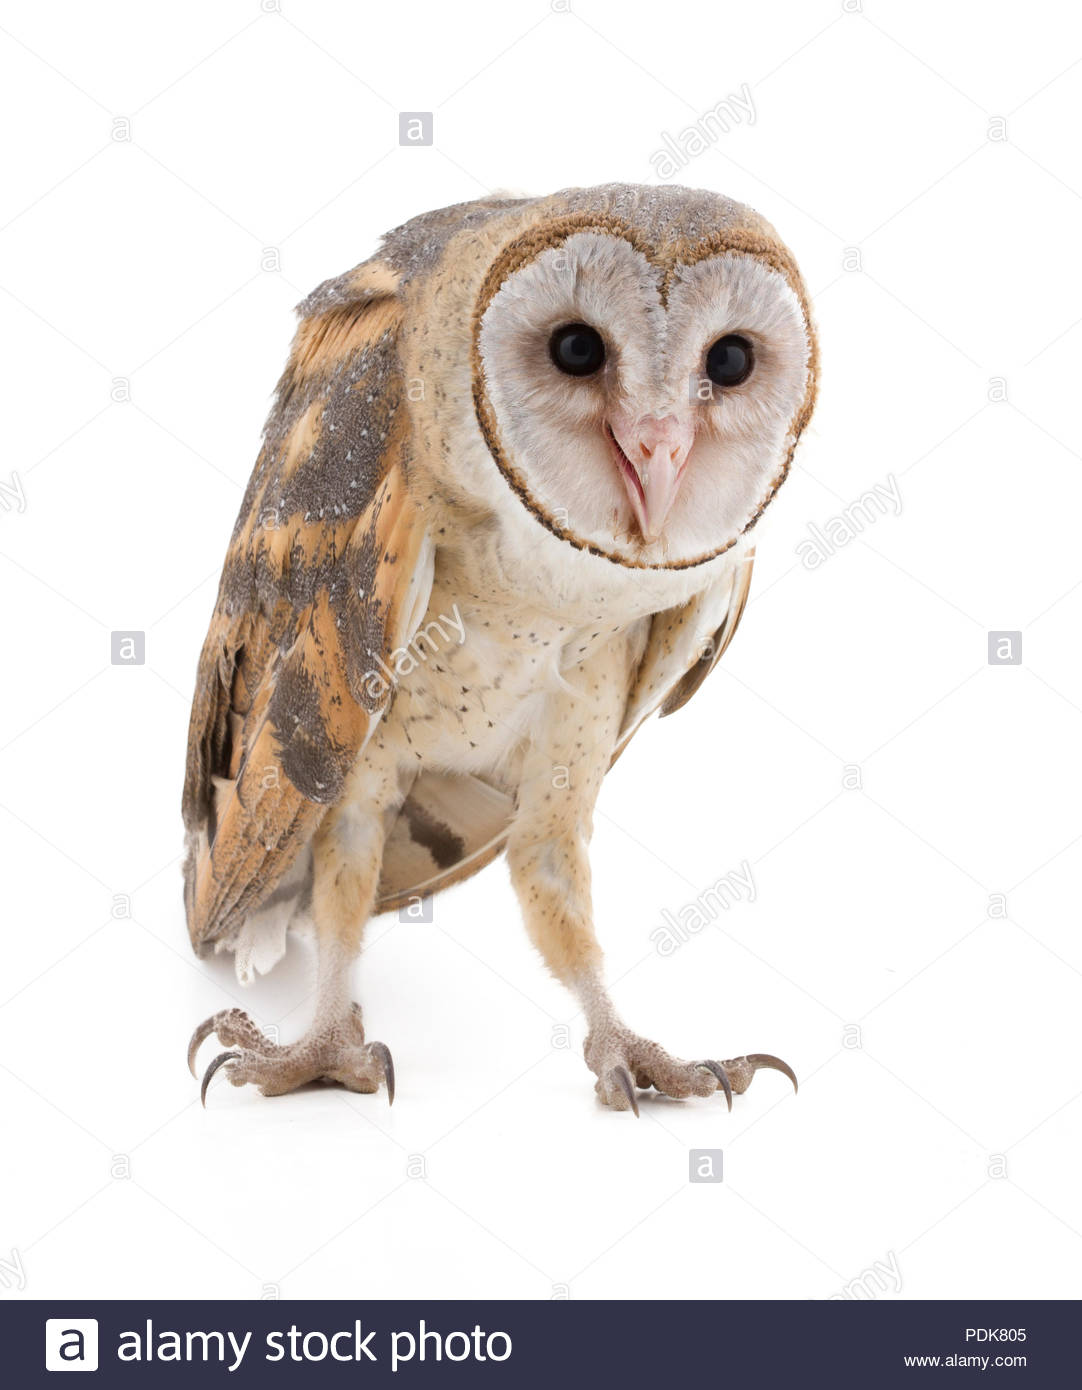 Young Indian Scops Owl, Otus bakkamoena, in front of white background - Stock Image